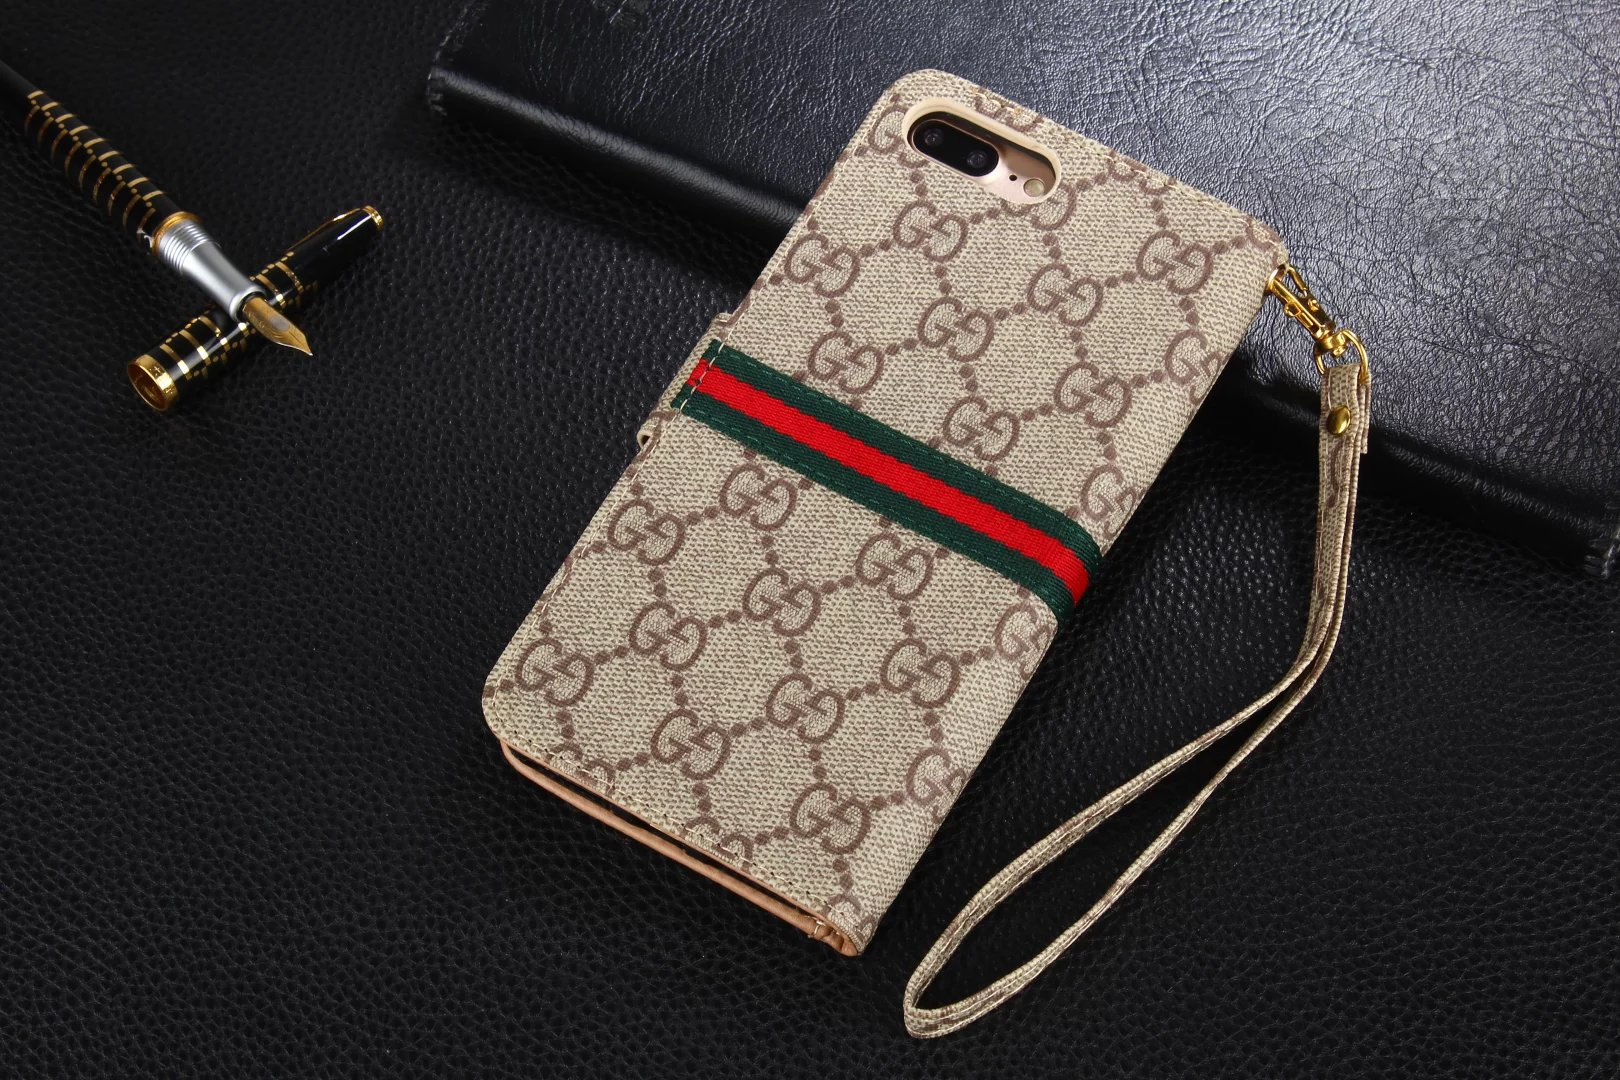 iphone 5se cases iphone 5s case sale fashion iphone5s 5 SE case iphone 5s nice cases iphone 5 accessories apple phone cases iphone 5s 5s phone cases case 5s designer iphone sleeve